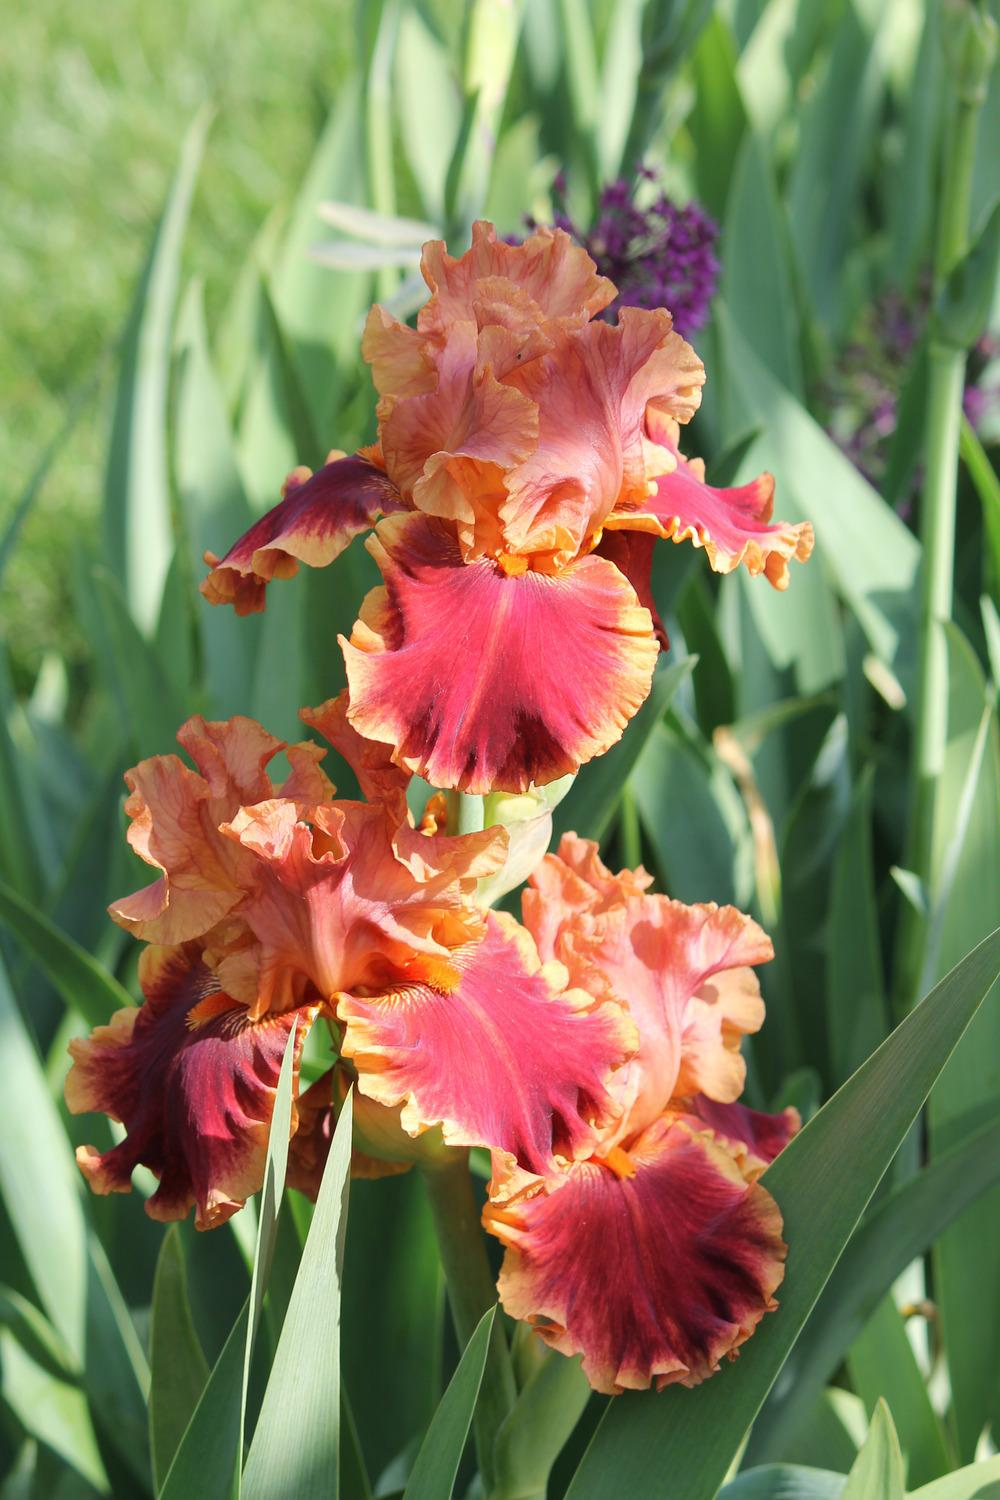 Photo of Tall Bearded Iris (Iris 'Drinks at Sunset') uploaded by ARUBA1334